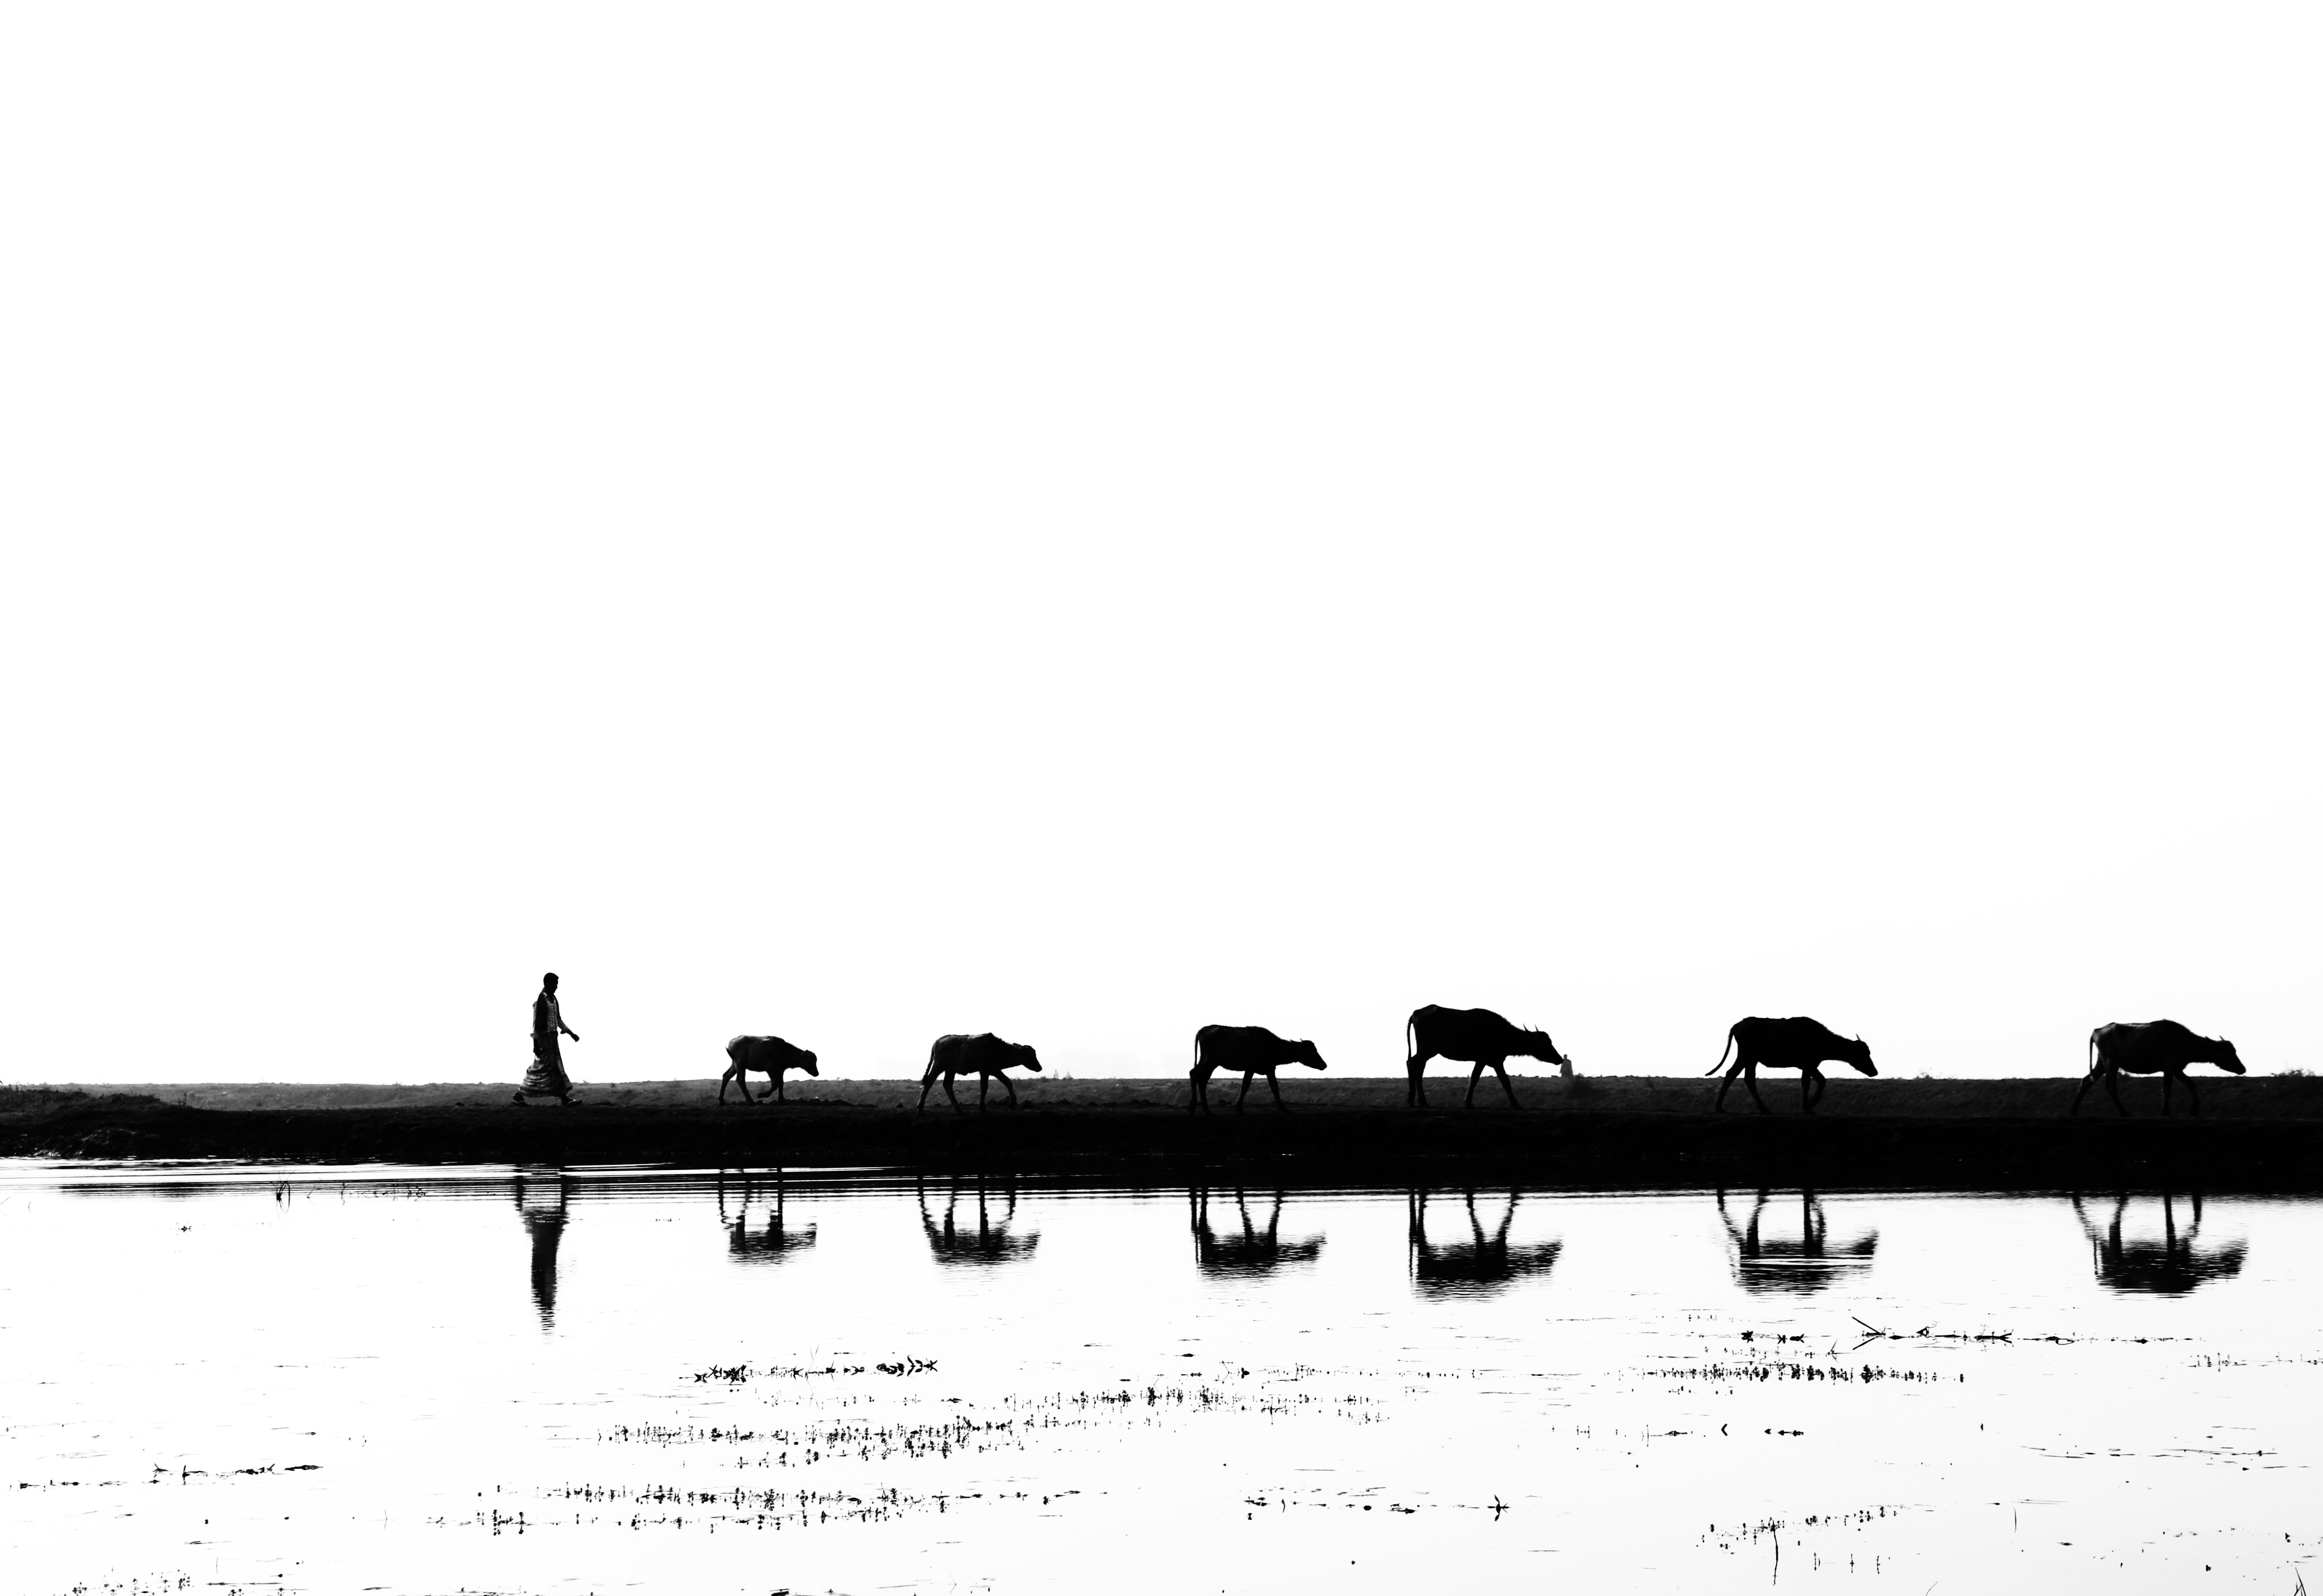 silhouette of man with animals walking near body of water during daytime